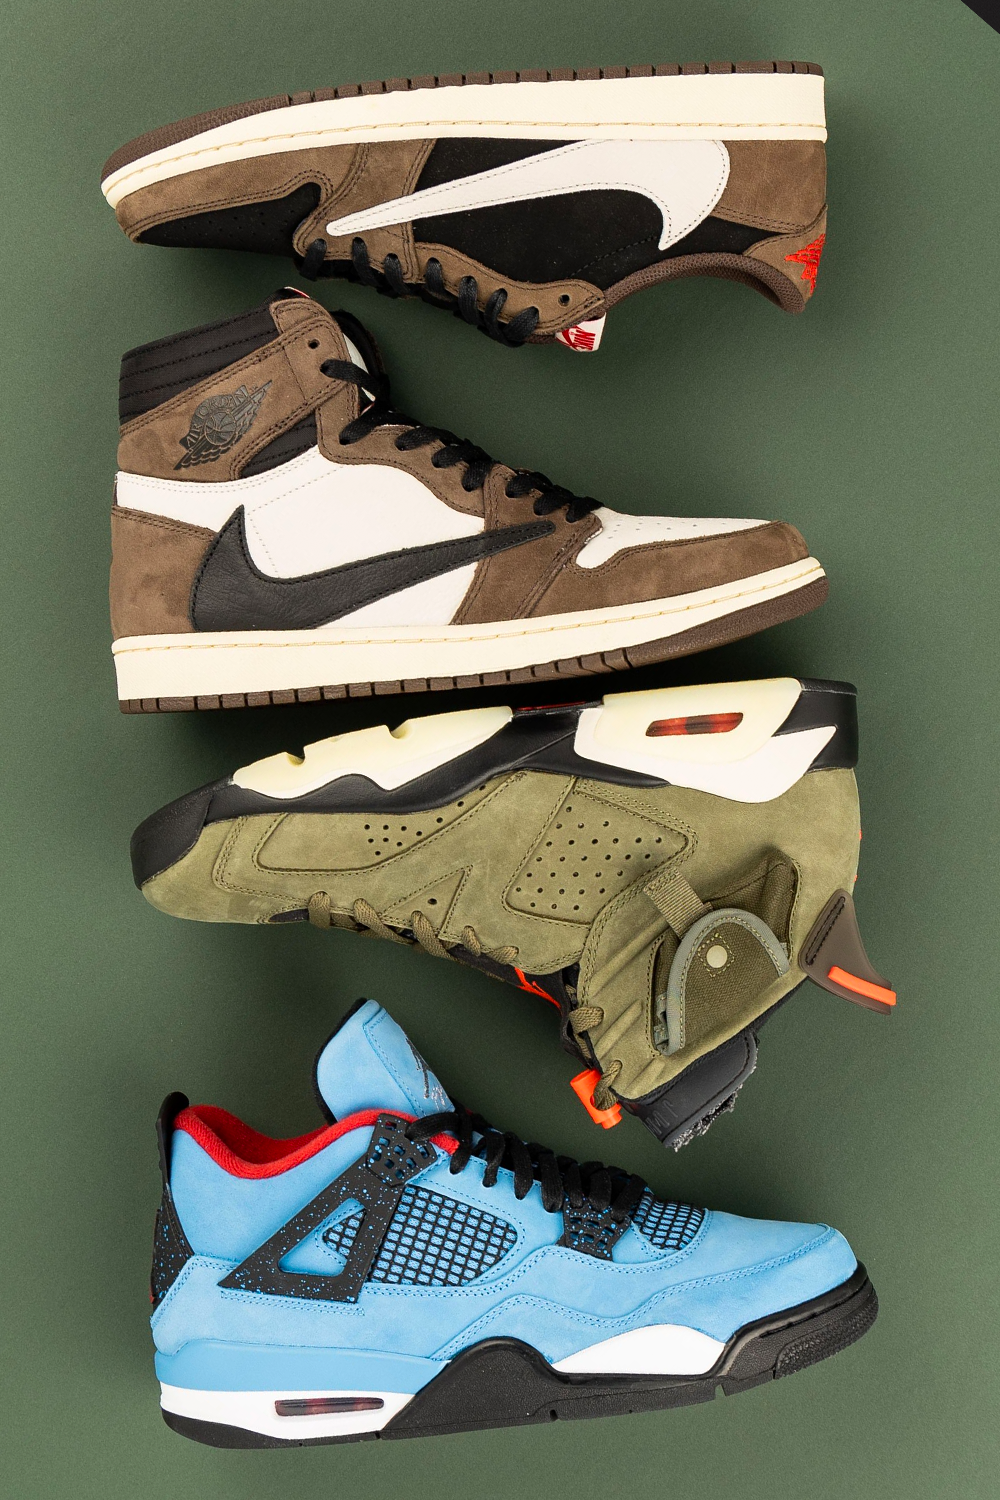 Travis Scott Air Jordans In 2020 Sneakers Fashion Hype Shoes Nike Shoes Jordans